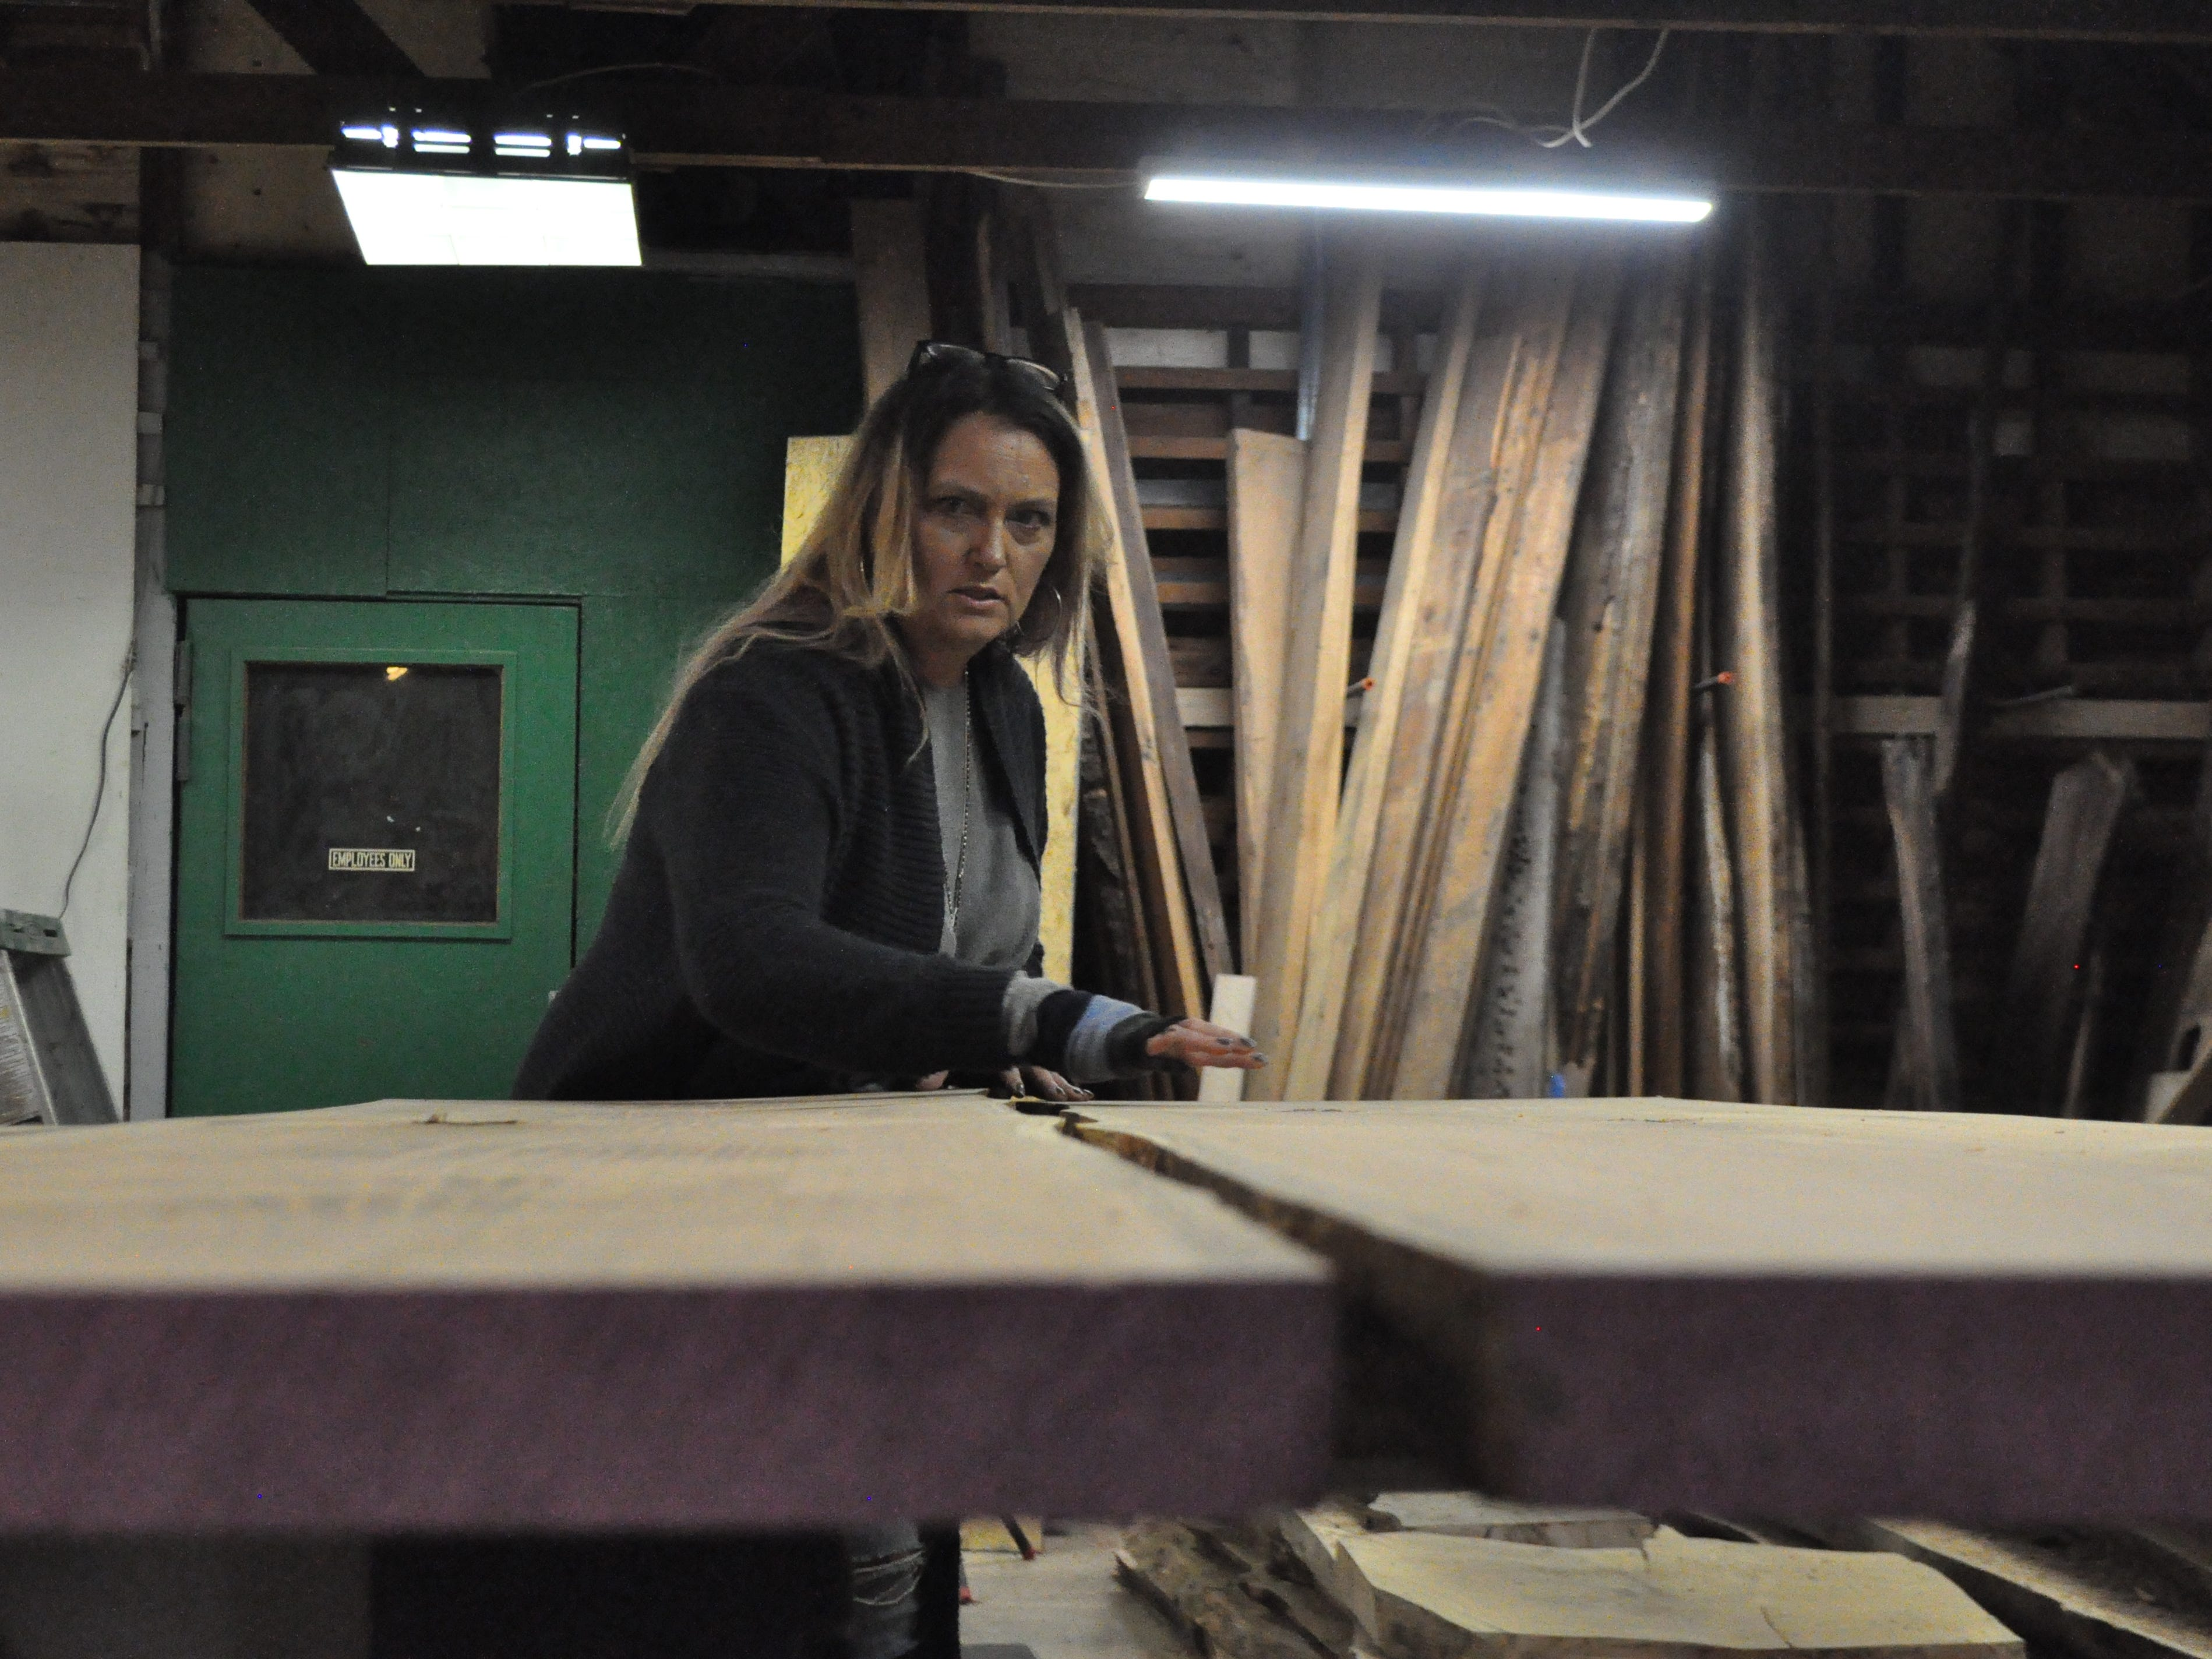 Attics of My Life store owner Ashley Abell shows a table in the making at her woodworking shop at her store's new Selbyville location on Nov. 14, 2018.